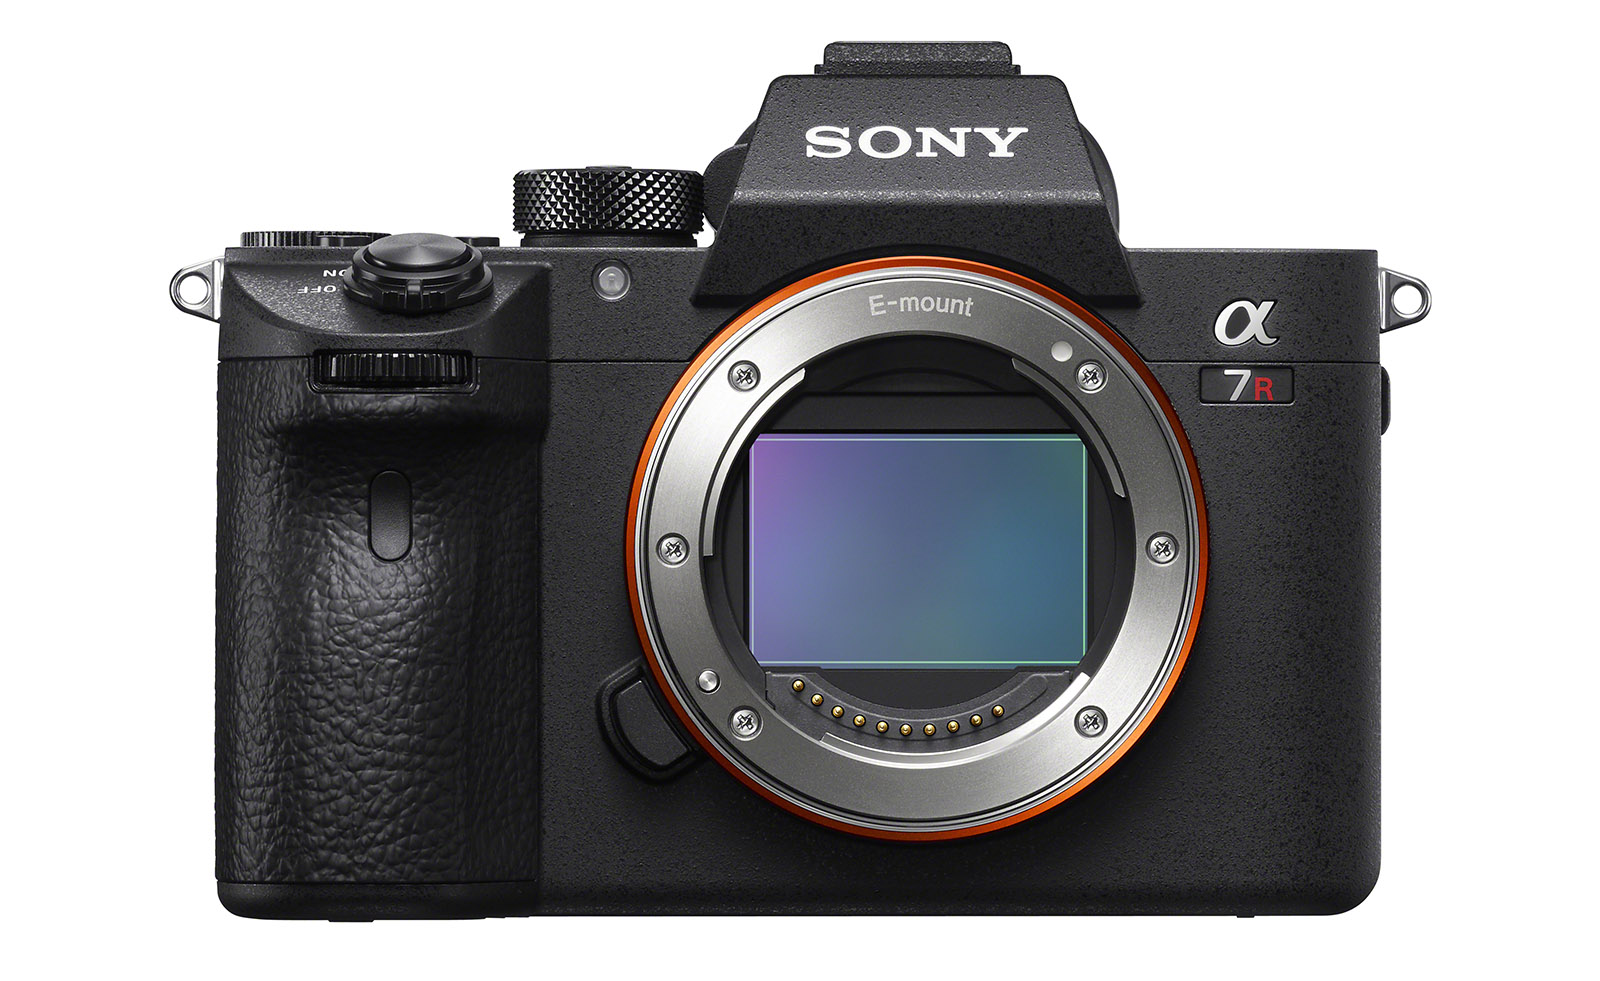 Sony a7R III Officially Announced; Features Better Autofocus And Battery Life